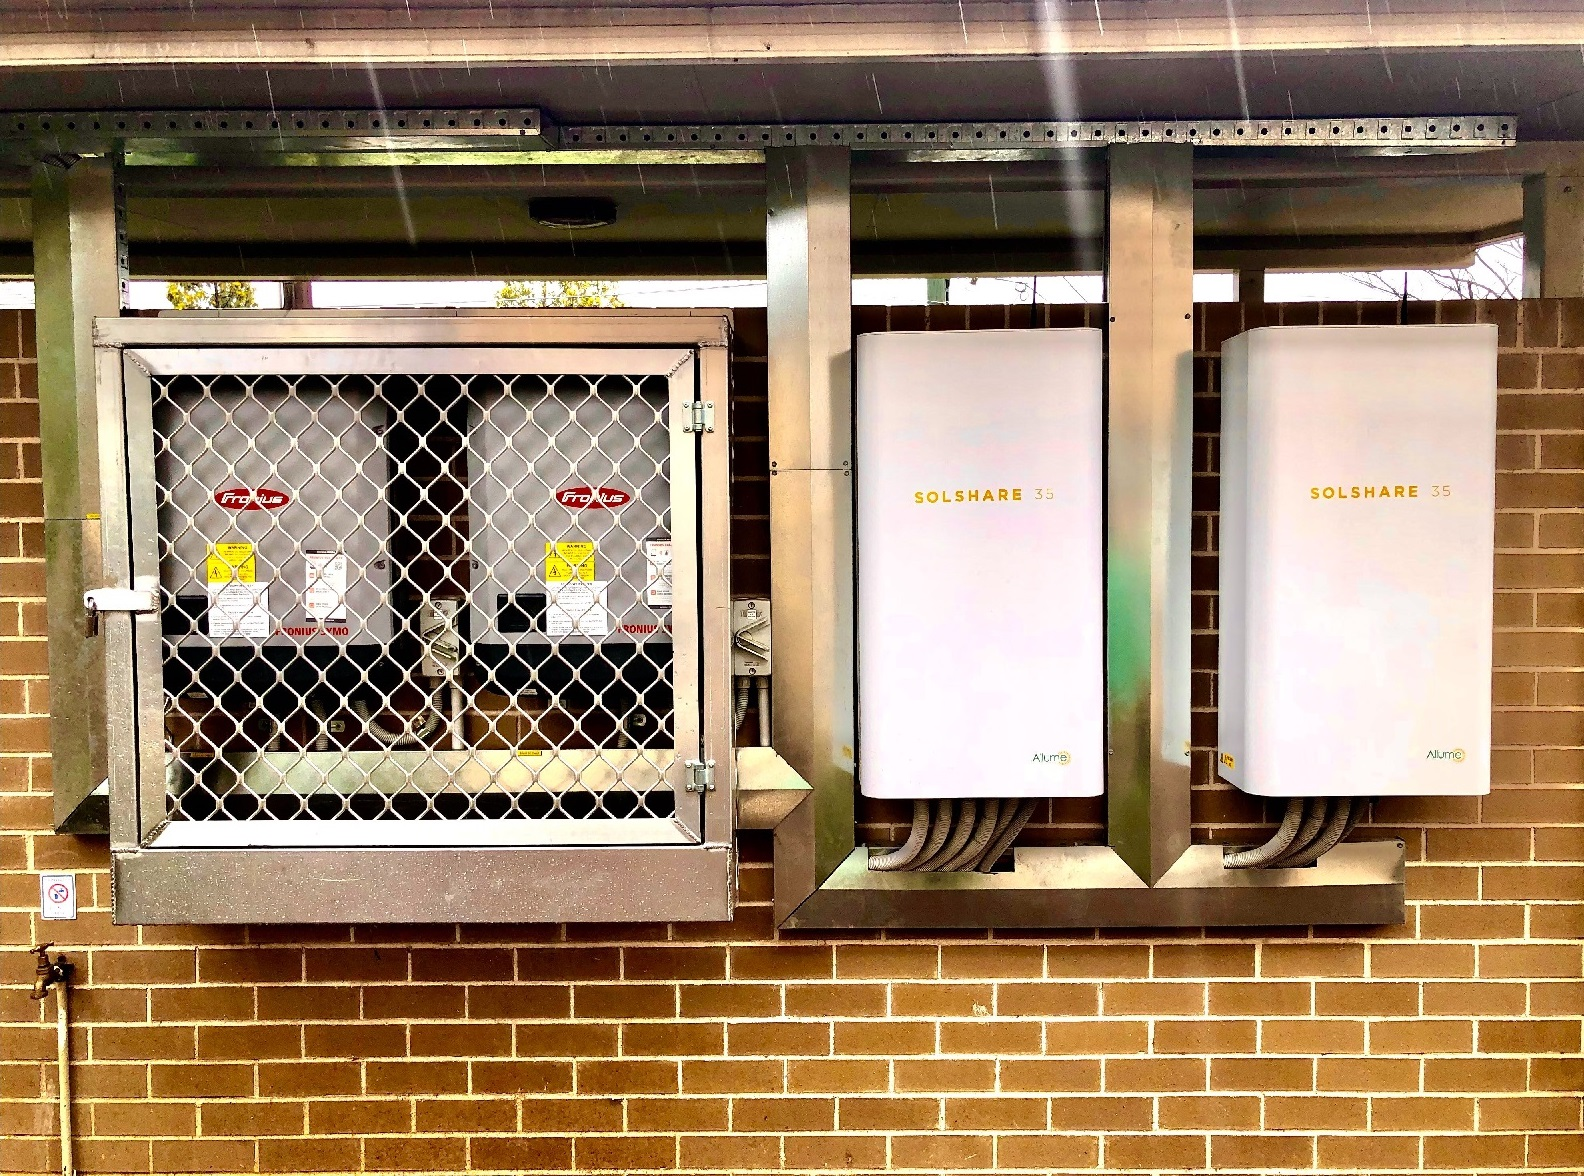 Two SolShare 35s installed next to two Fronius inverters